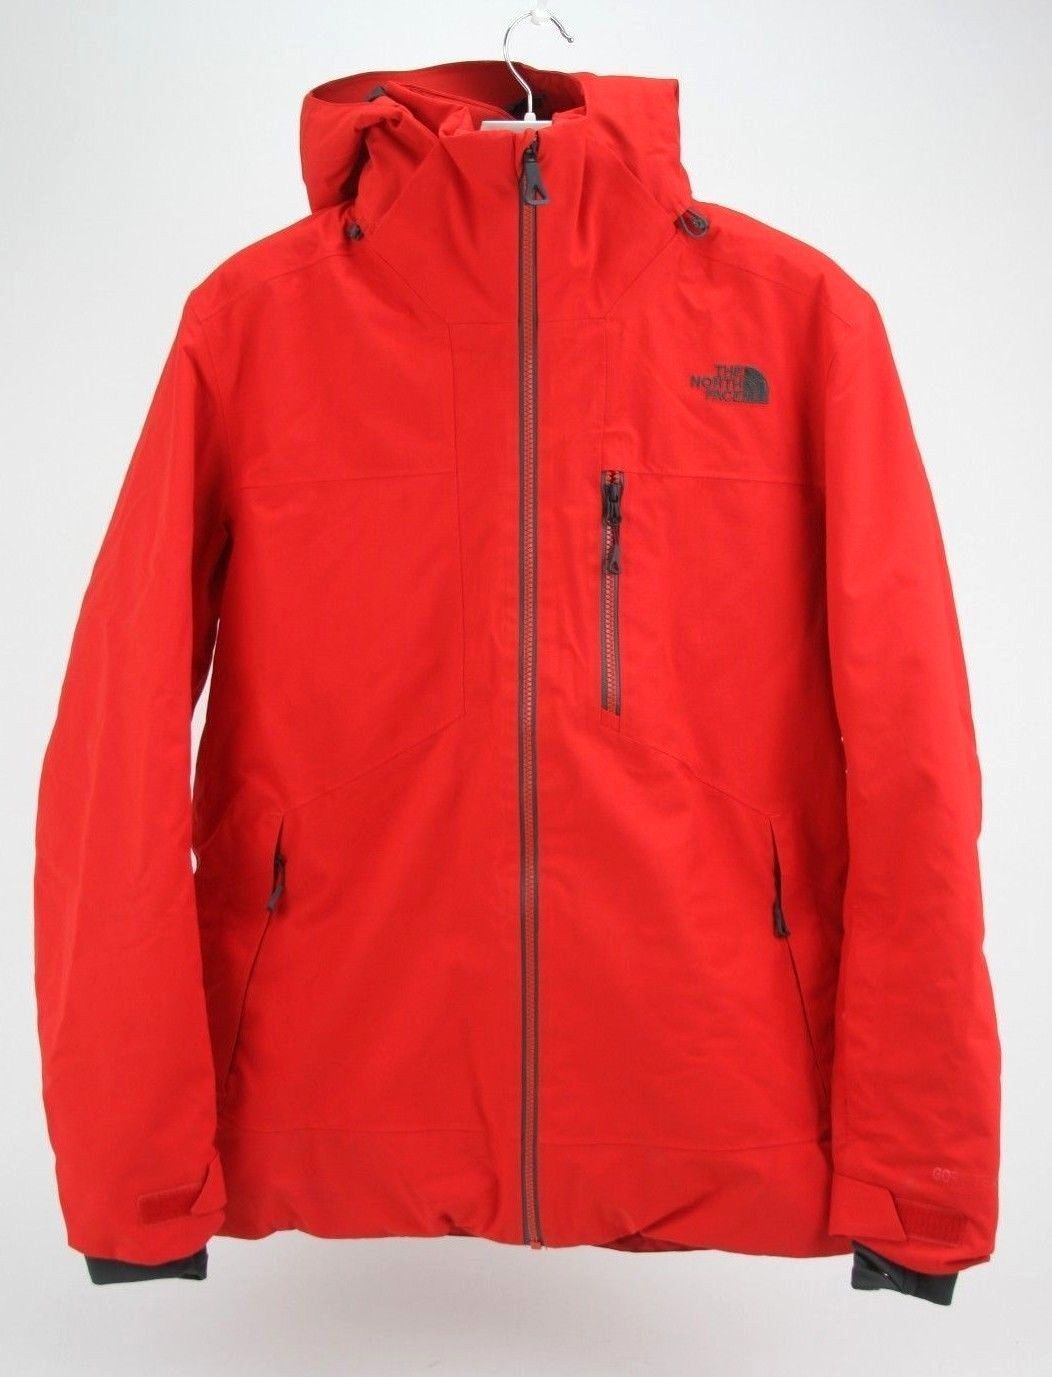 0551deca68b1 The North Face Maching Hooded Jacket - Men s L  38502  (eBay Link ...